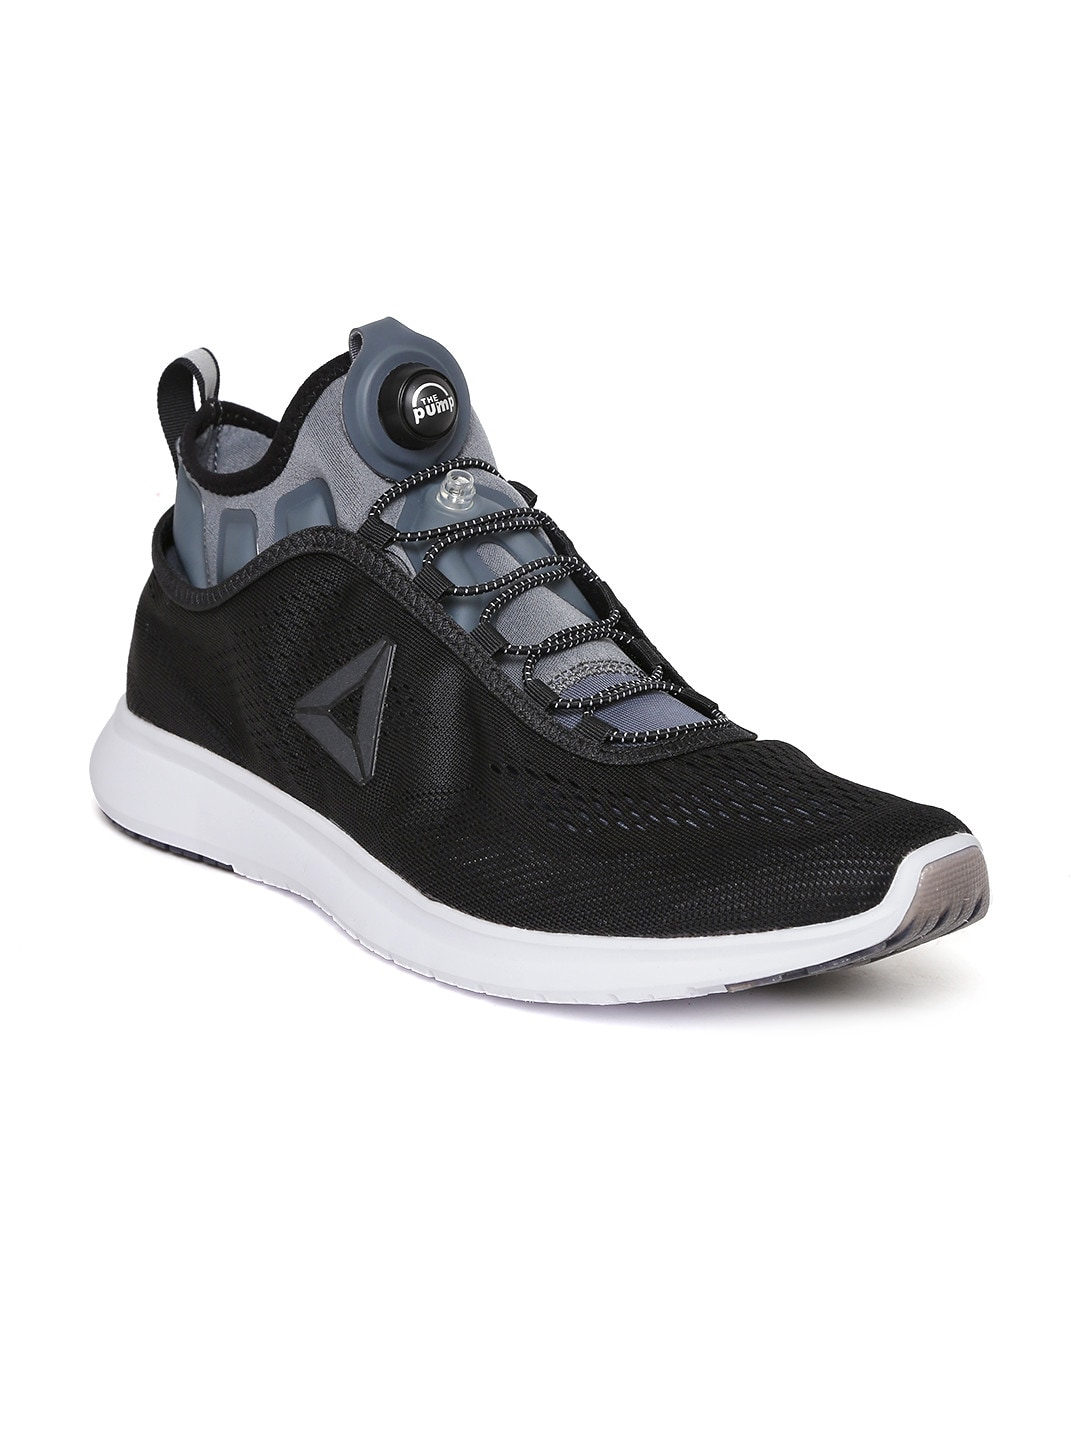 abbb5ce5731 Reebok bd4866 Men Black Pump Plus Tech Running Shoes- Price in India